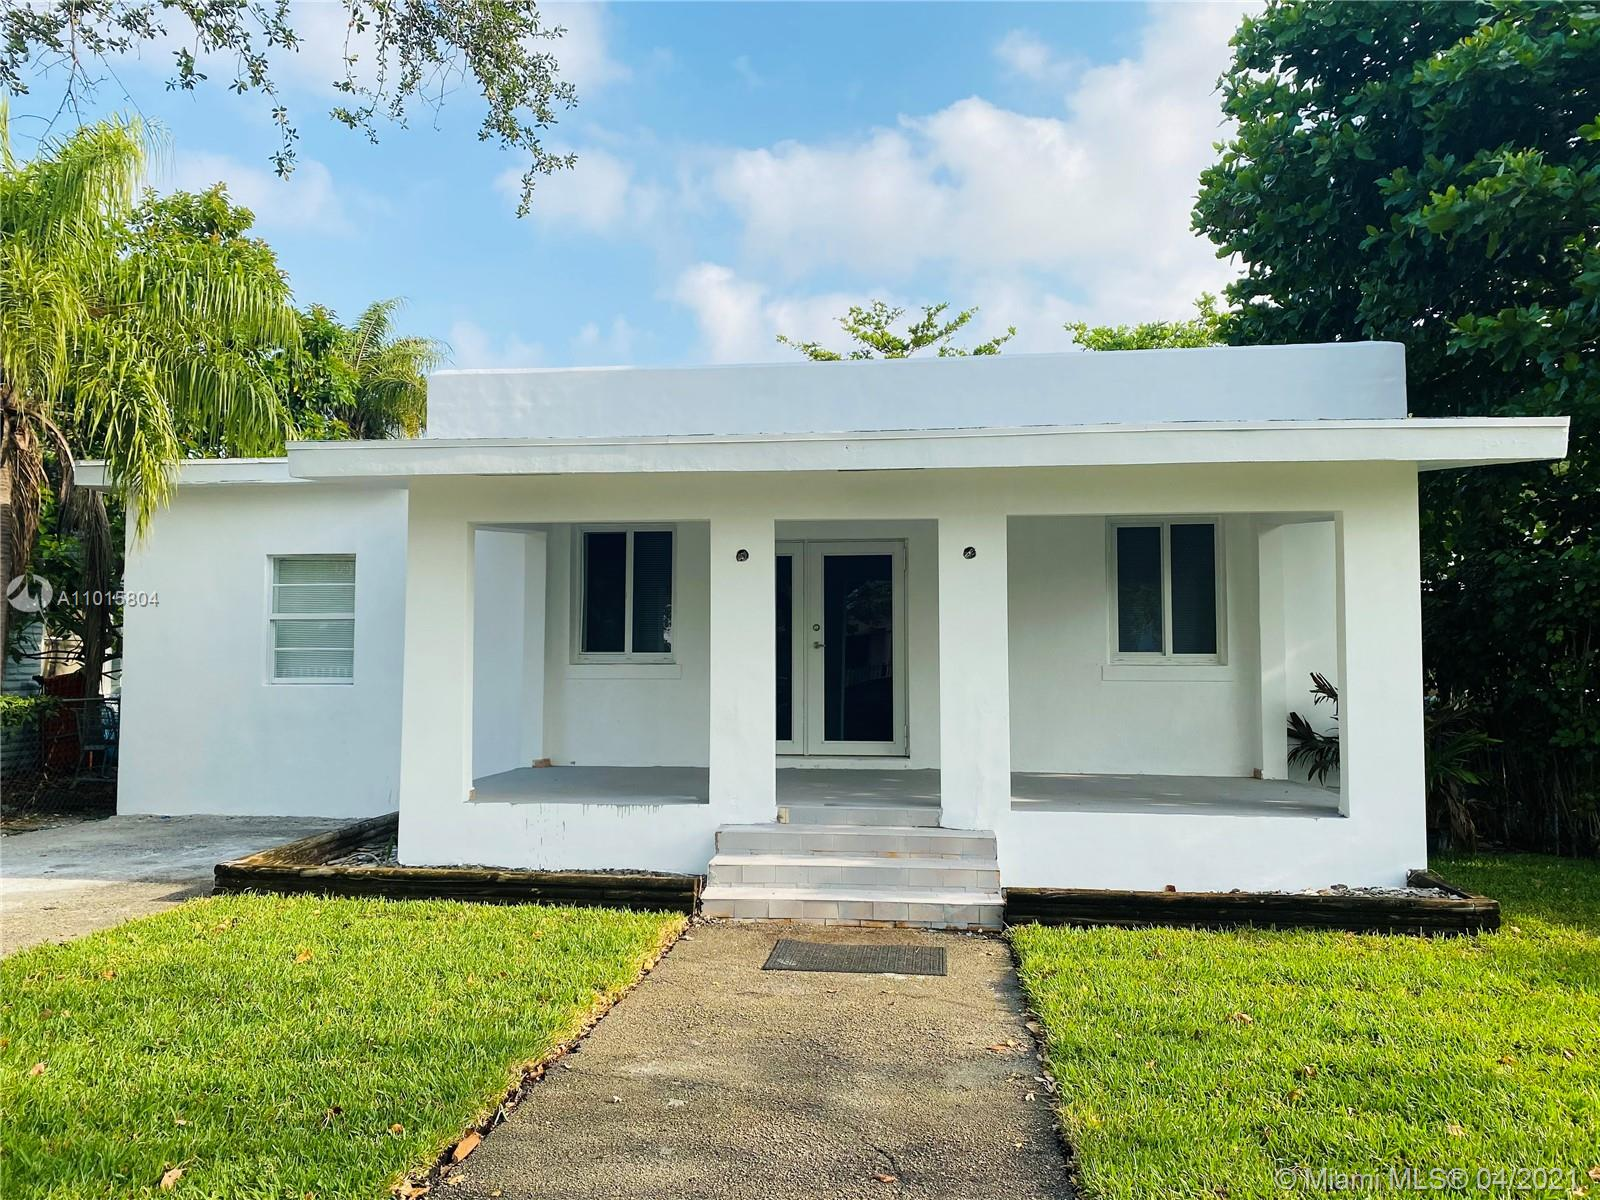 Details for 401 40th St, Miami, FL 33127